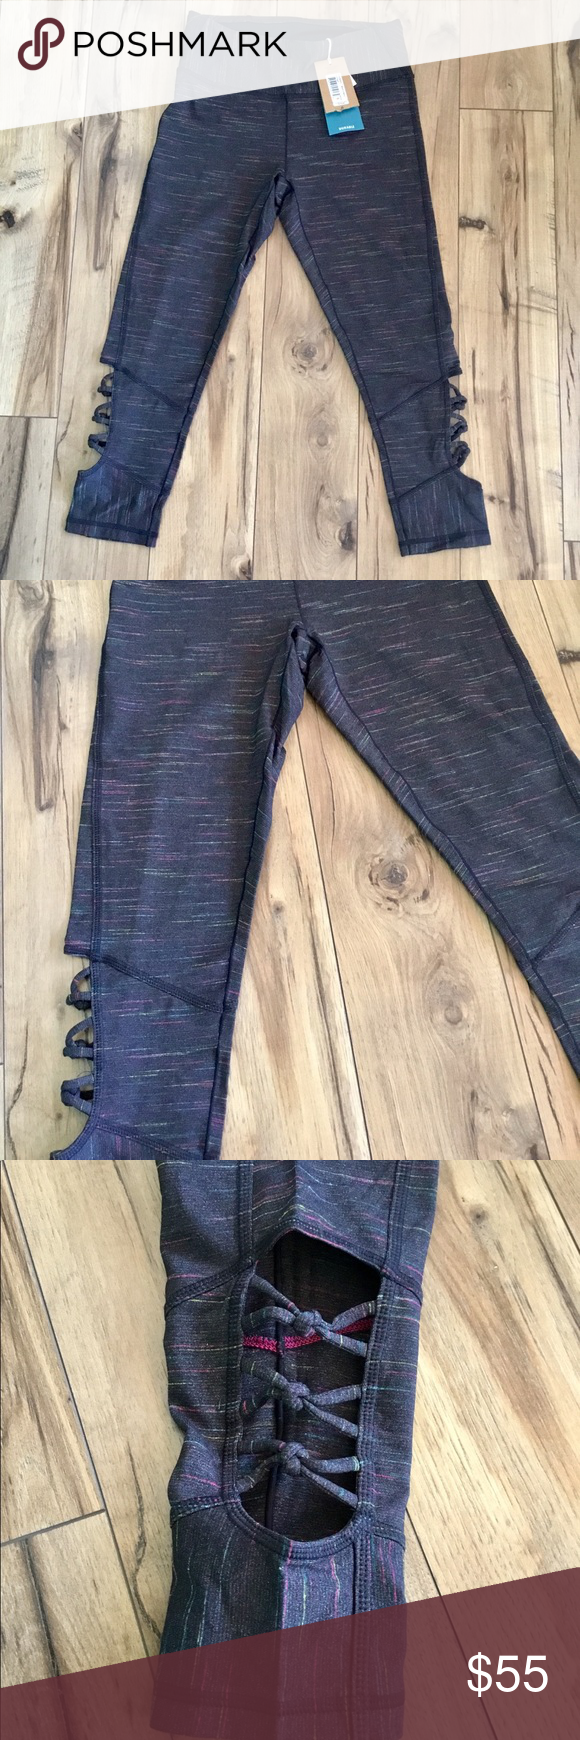 4ae5b6caa397c3 prAna High Rise Itzel Capris in Black Cherry A great pair of high waisted  prAna fitted